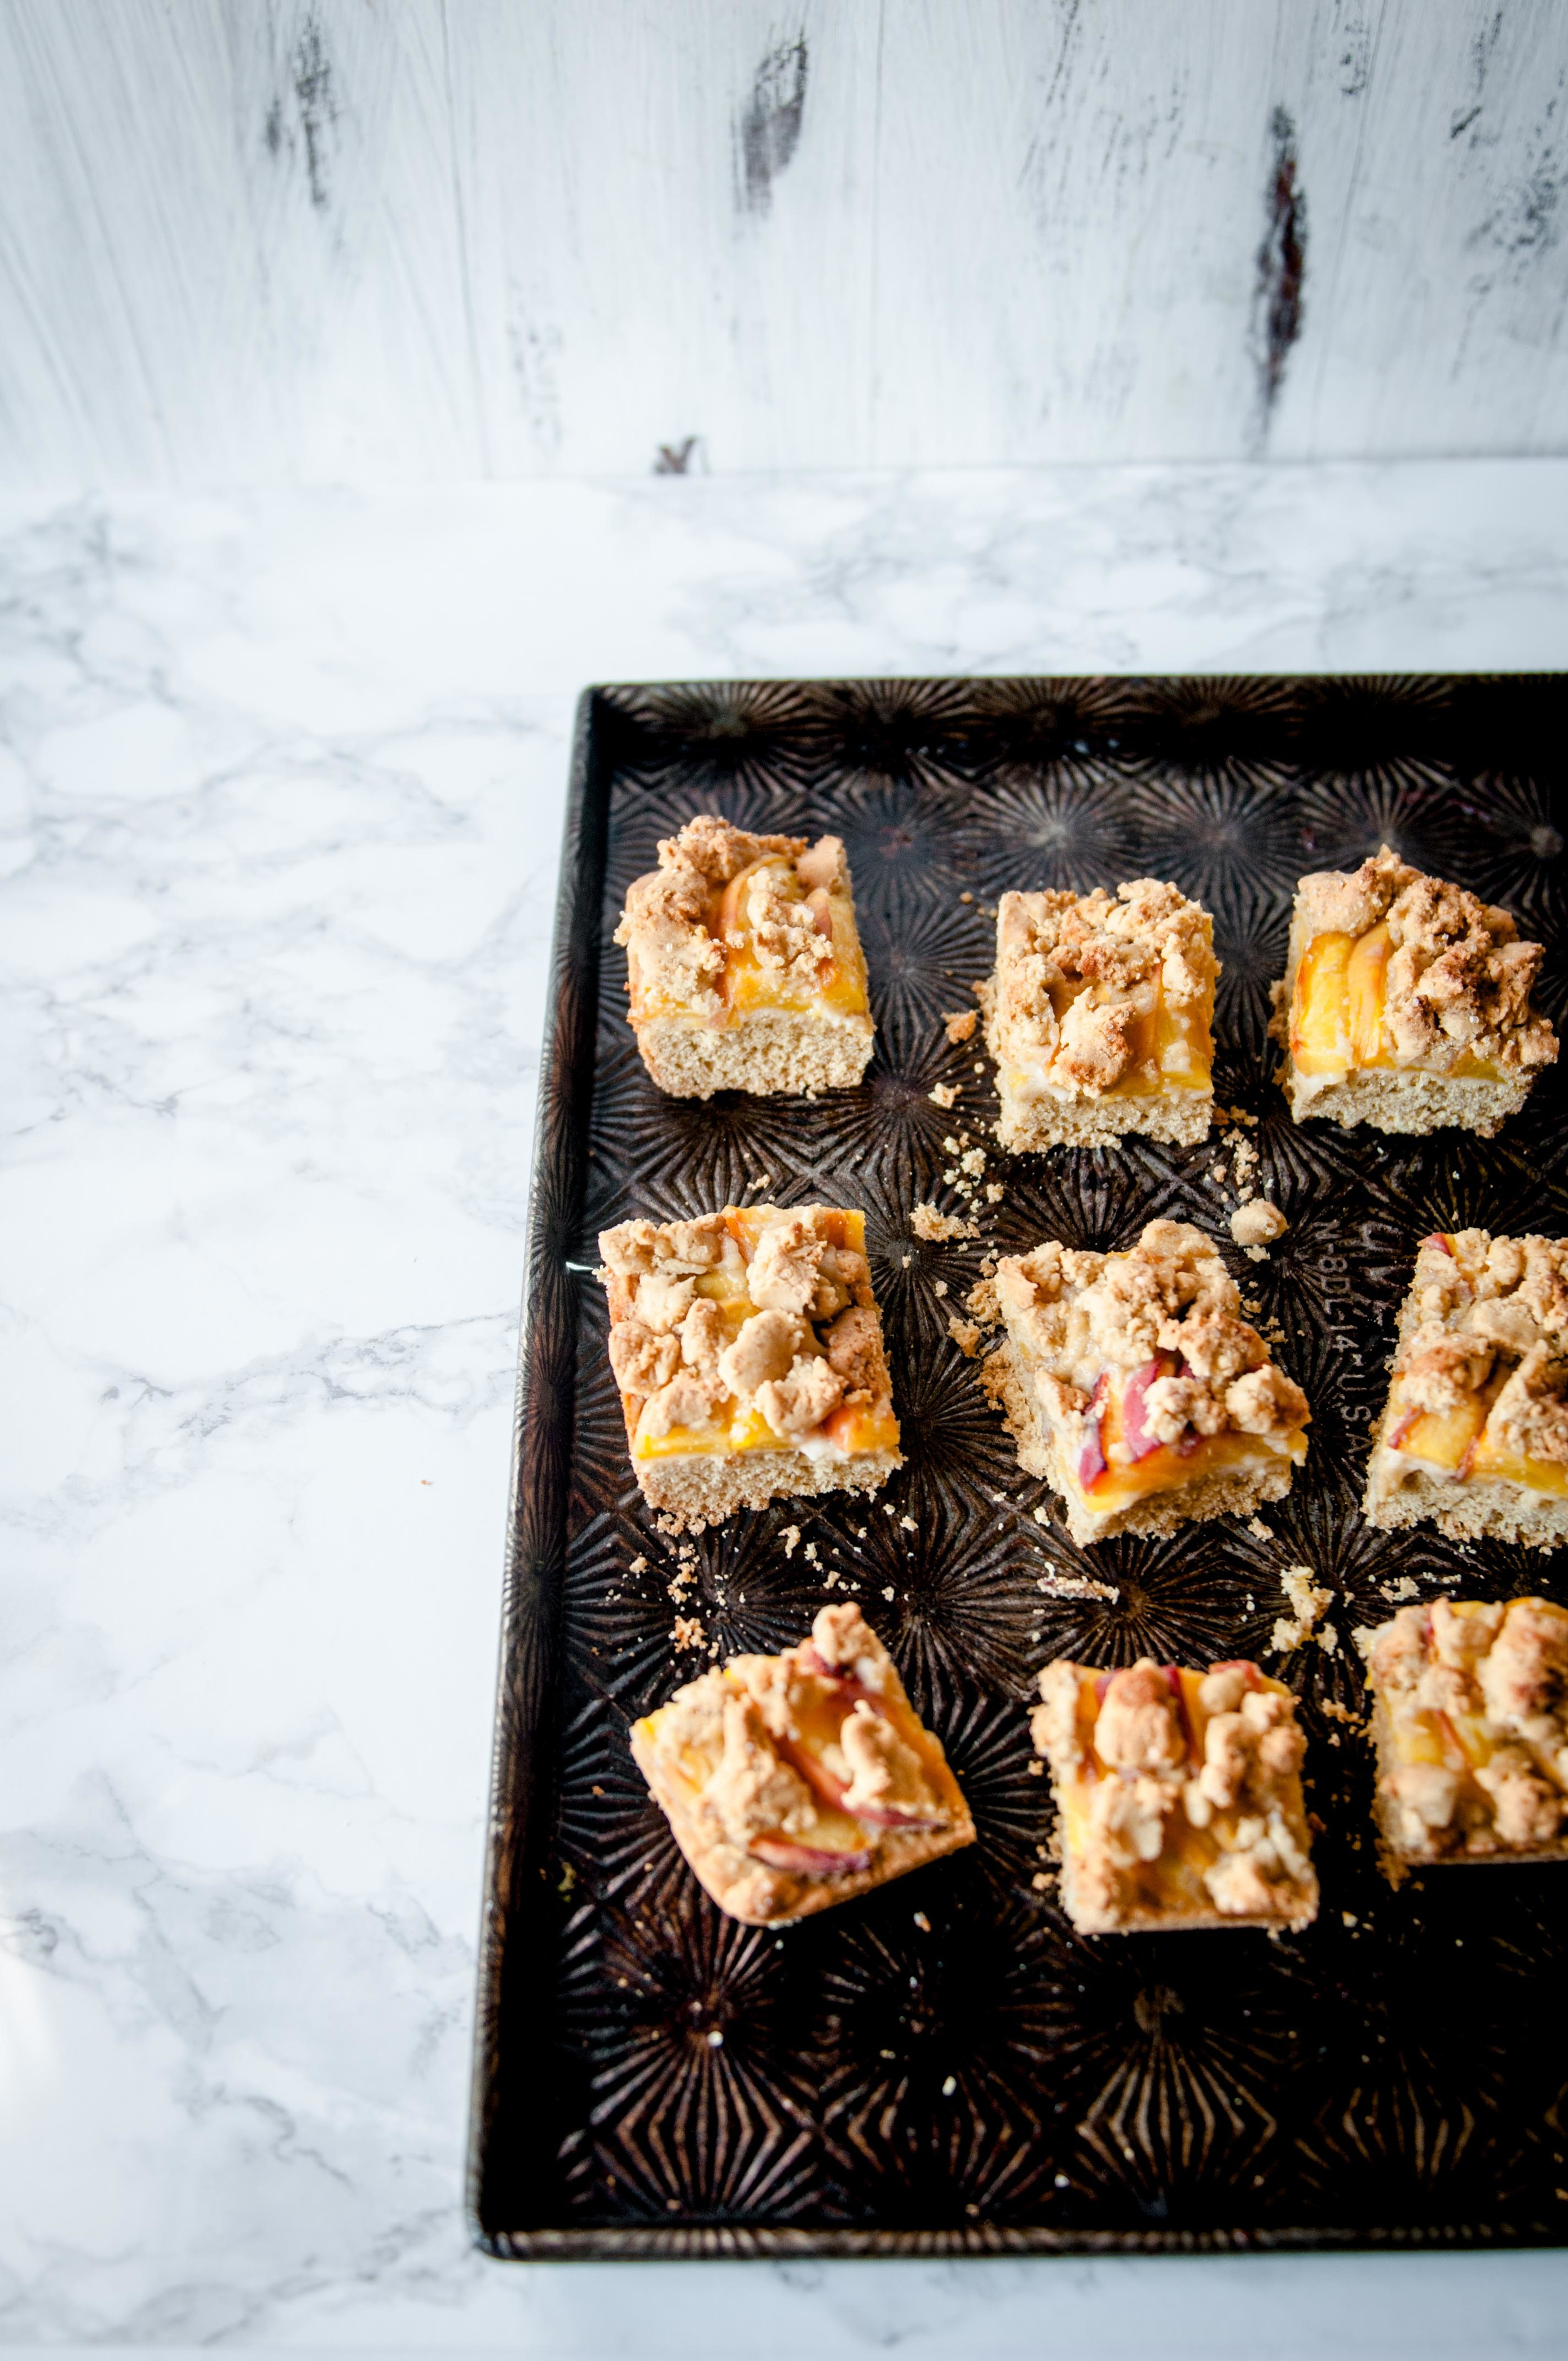 Glutenfree Peach Shortbread with crumble topping